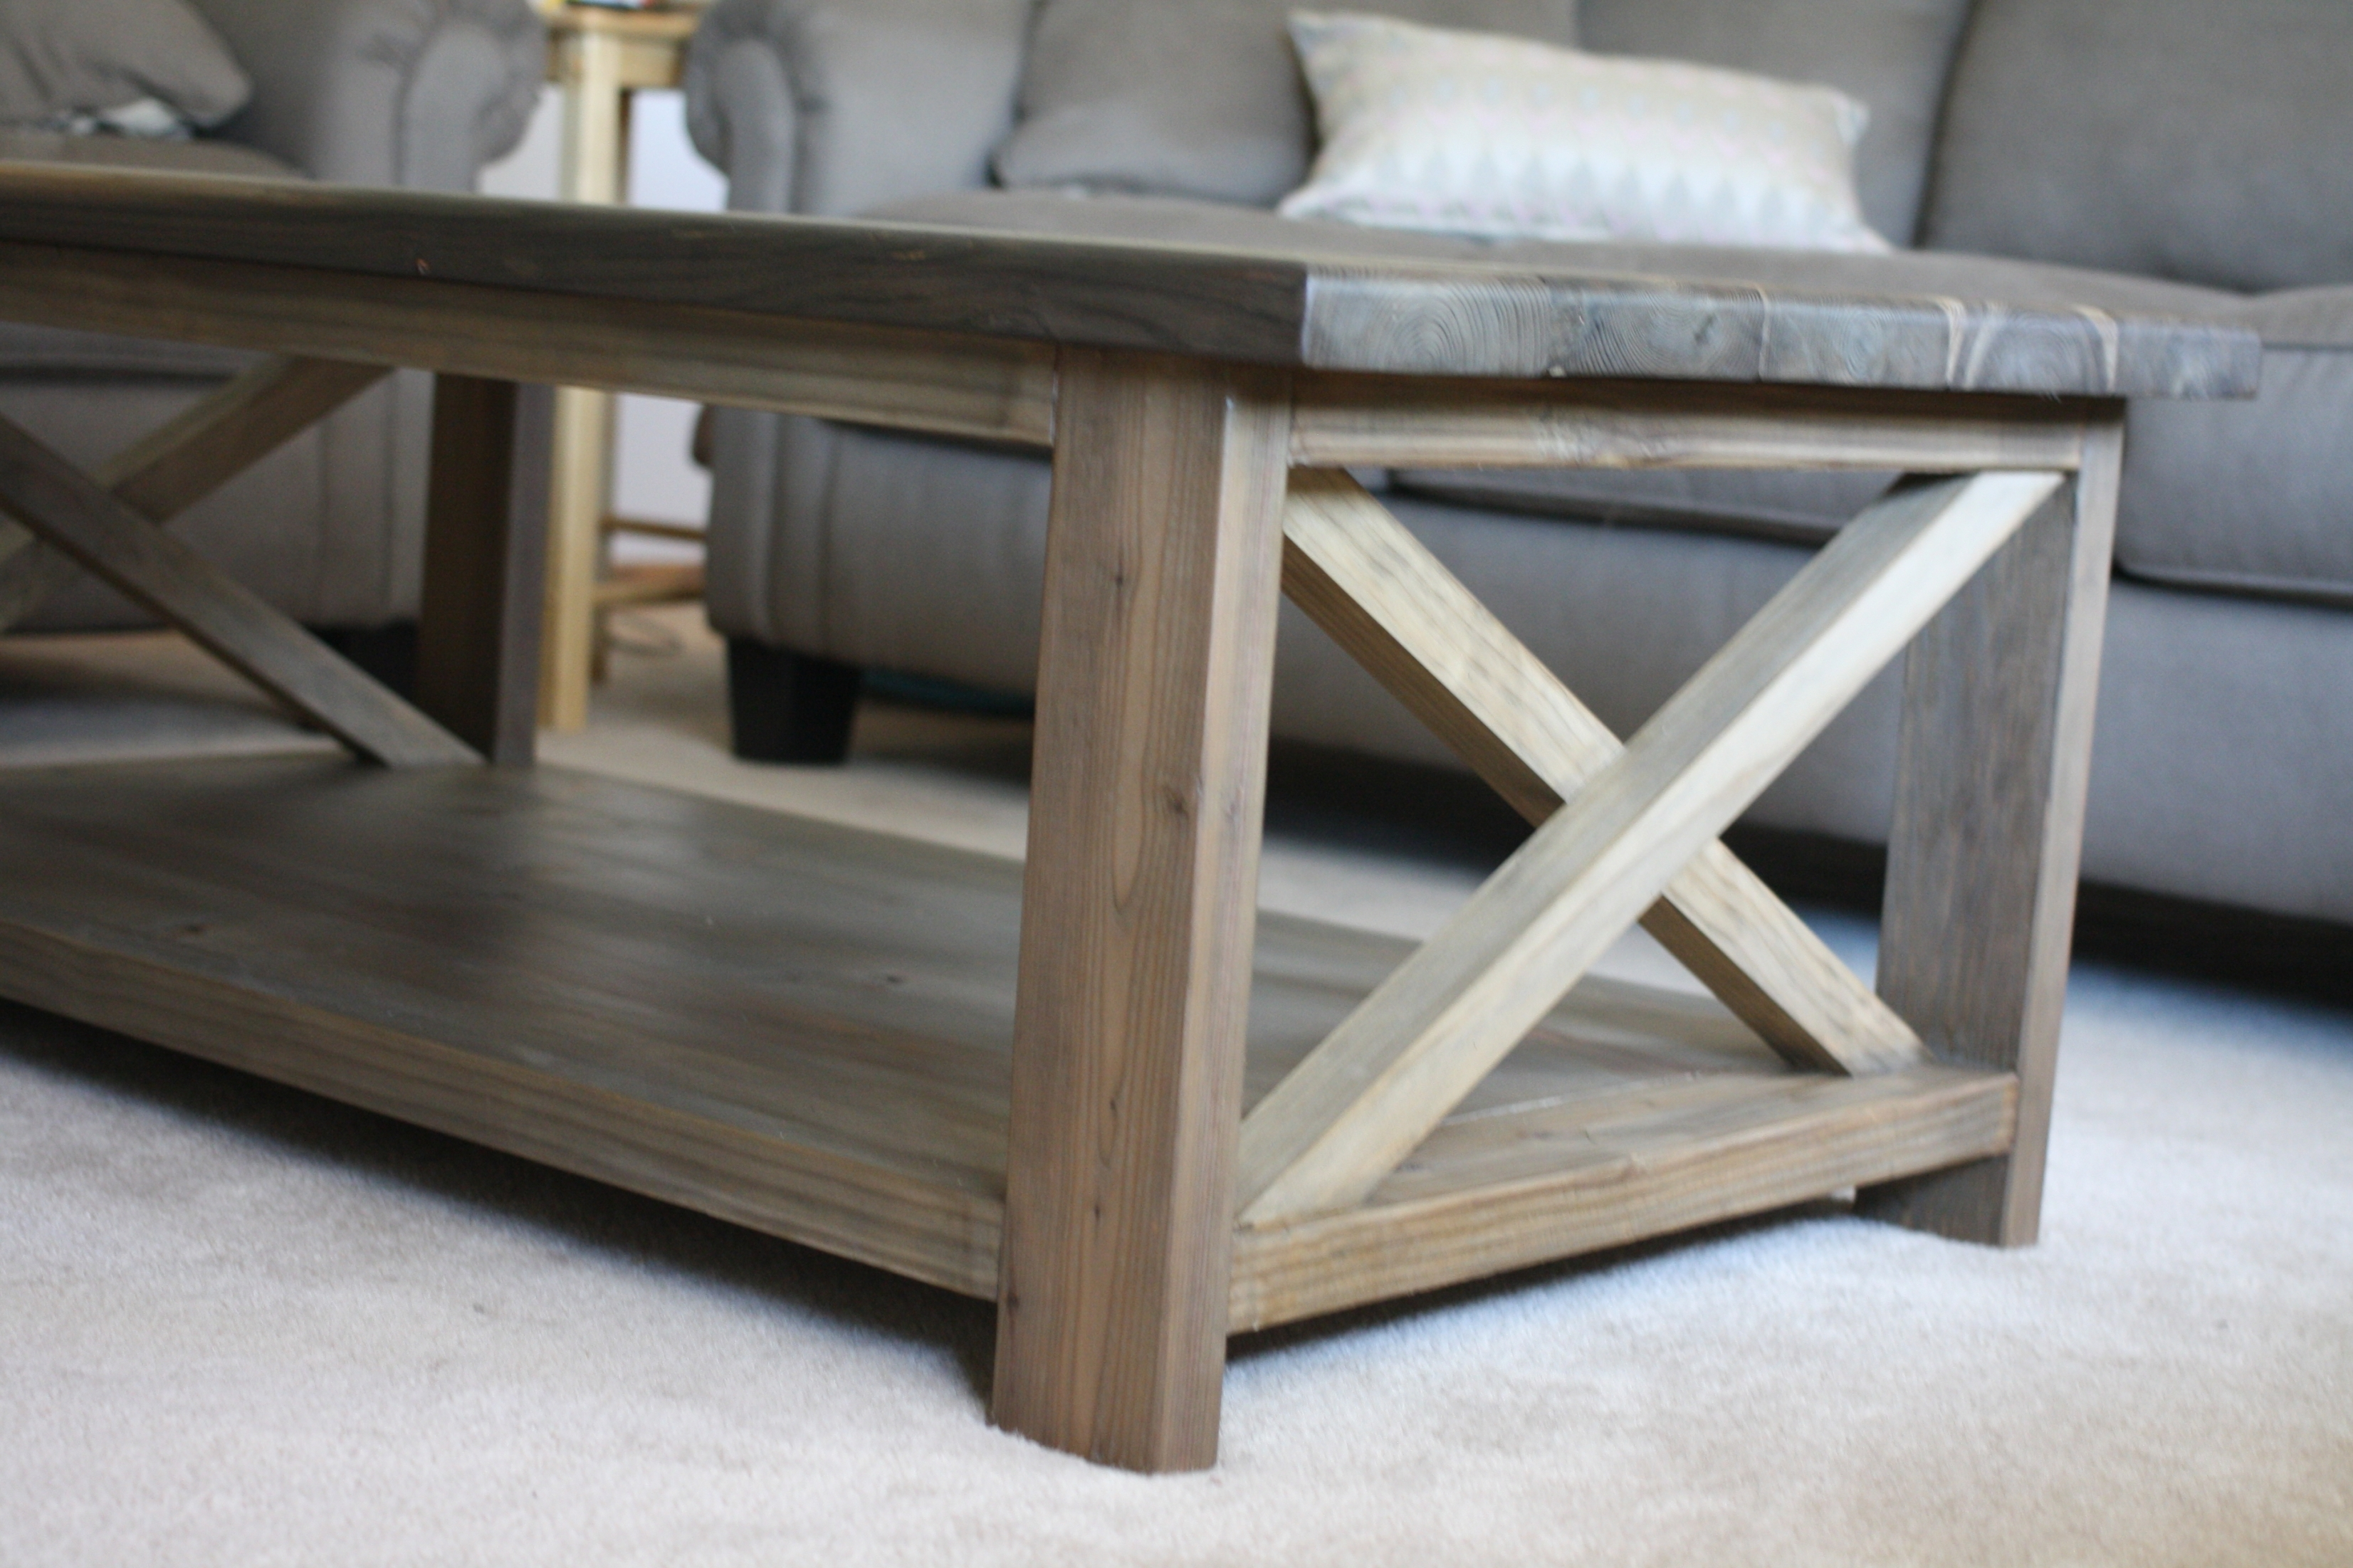 Home Design Ideas Terrific Modern Rustic Coffee Table Intended For In Most Popular Modern Rustic Coffee Tables (Gallery 4 of 20)